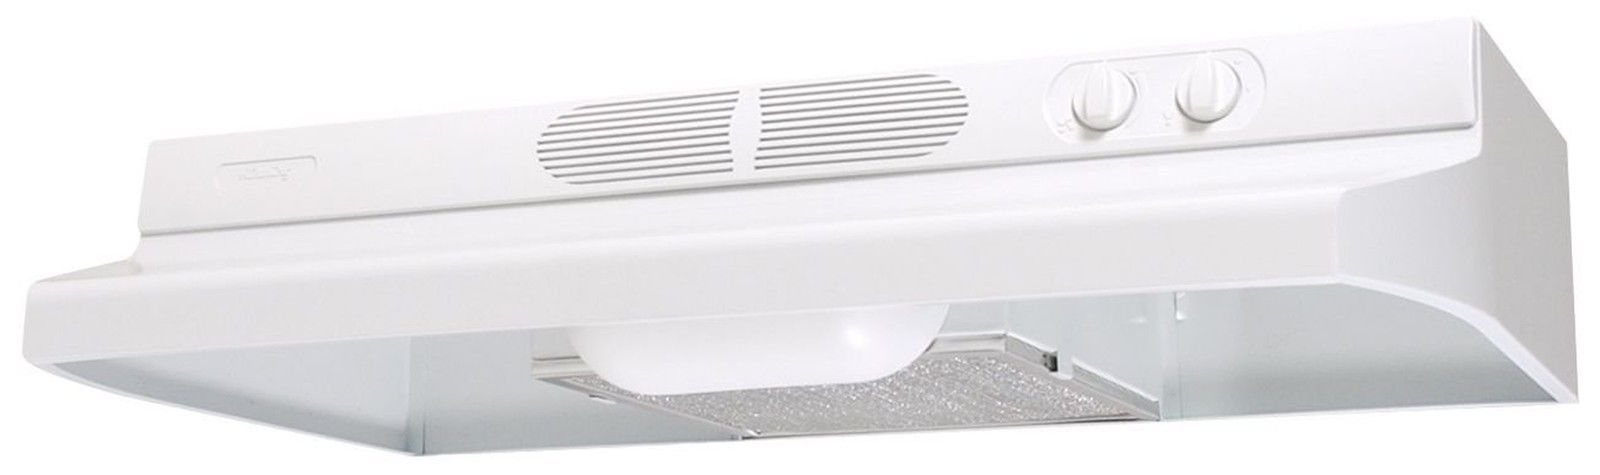 Air King AV1213 Advantage Convertible Under Cabinet Range Hood With 2 Speed  B..